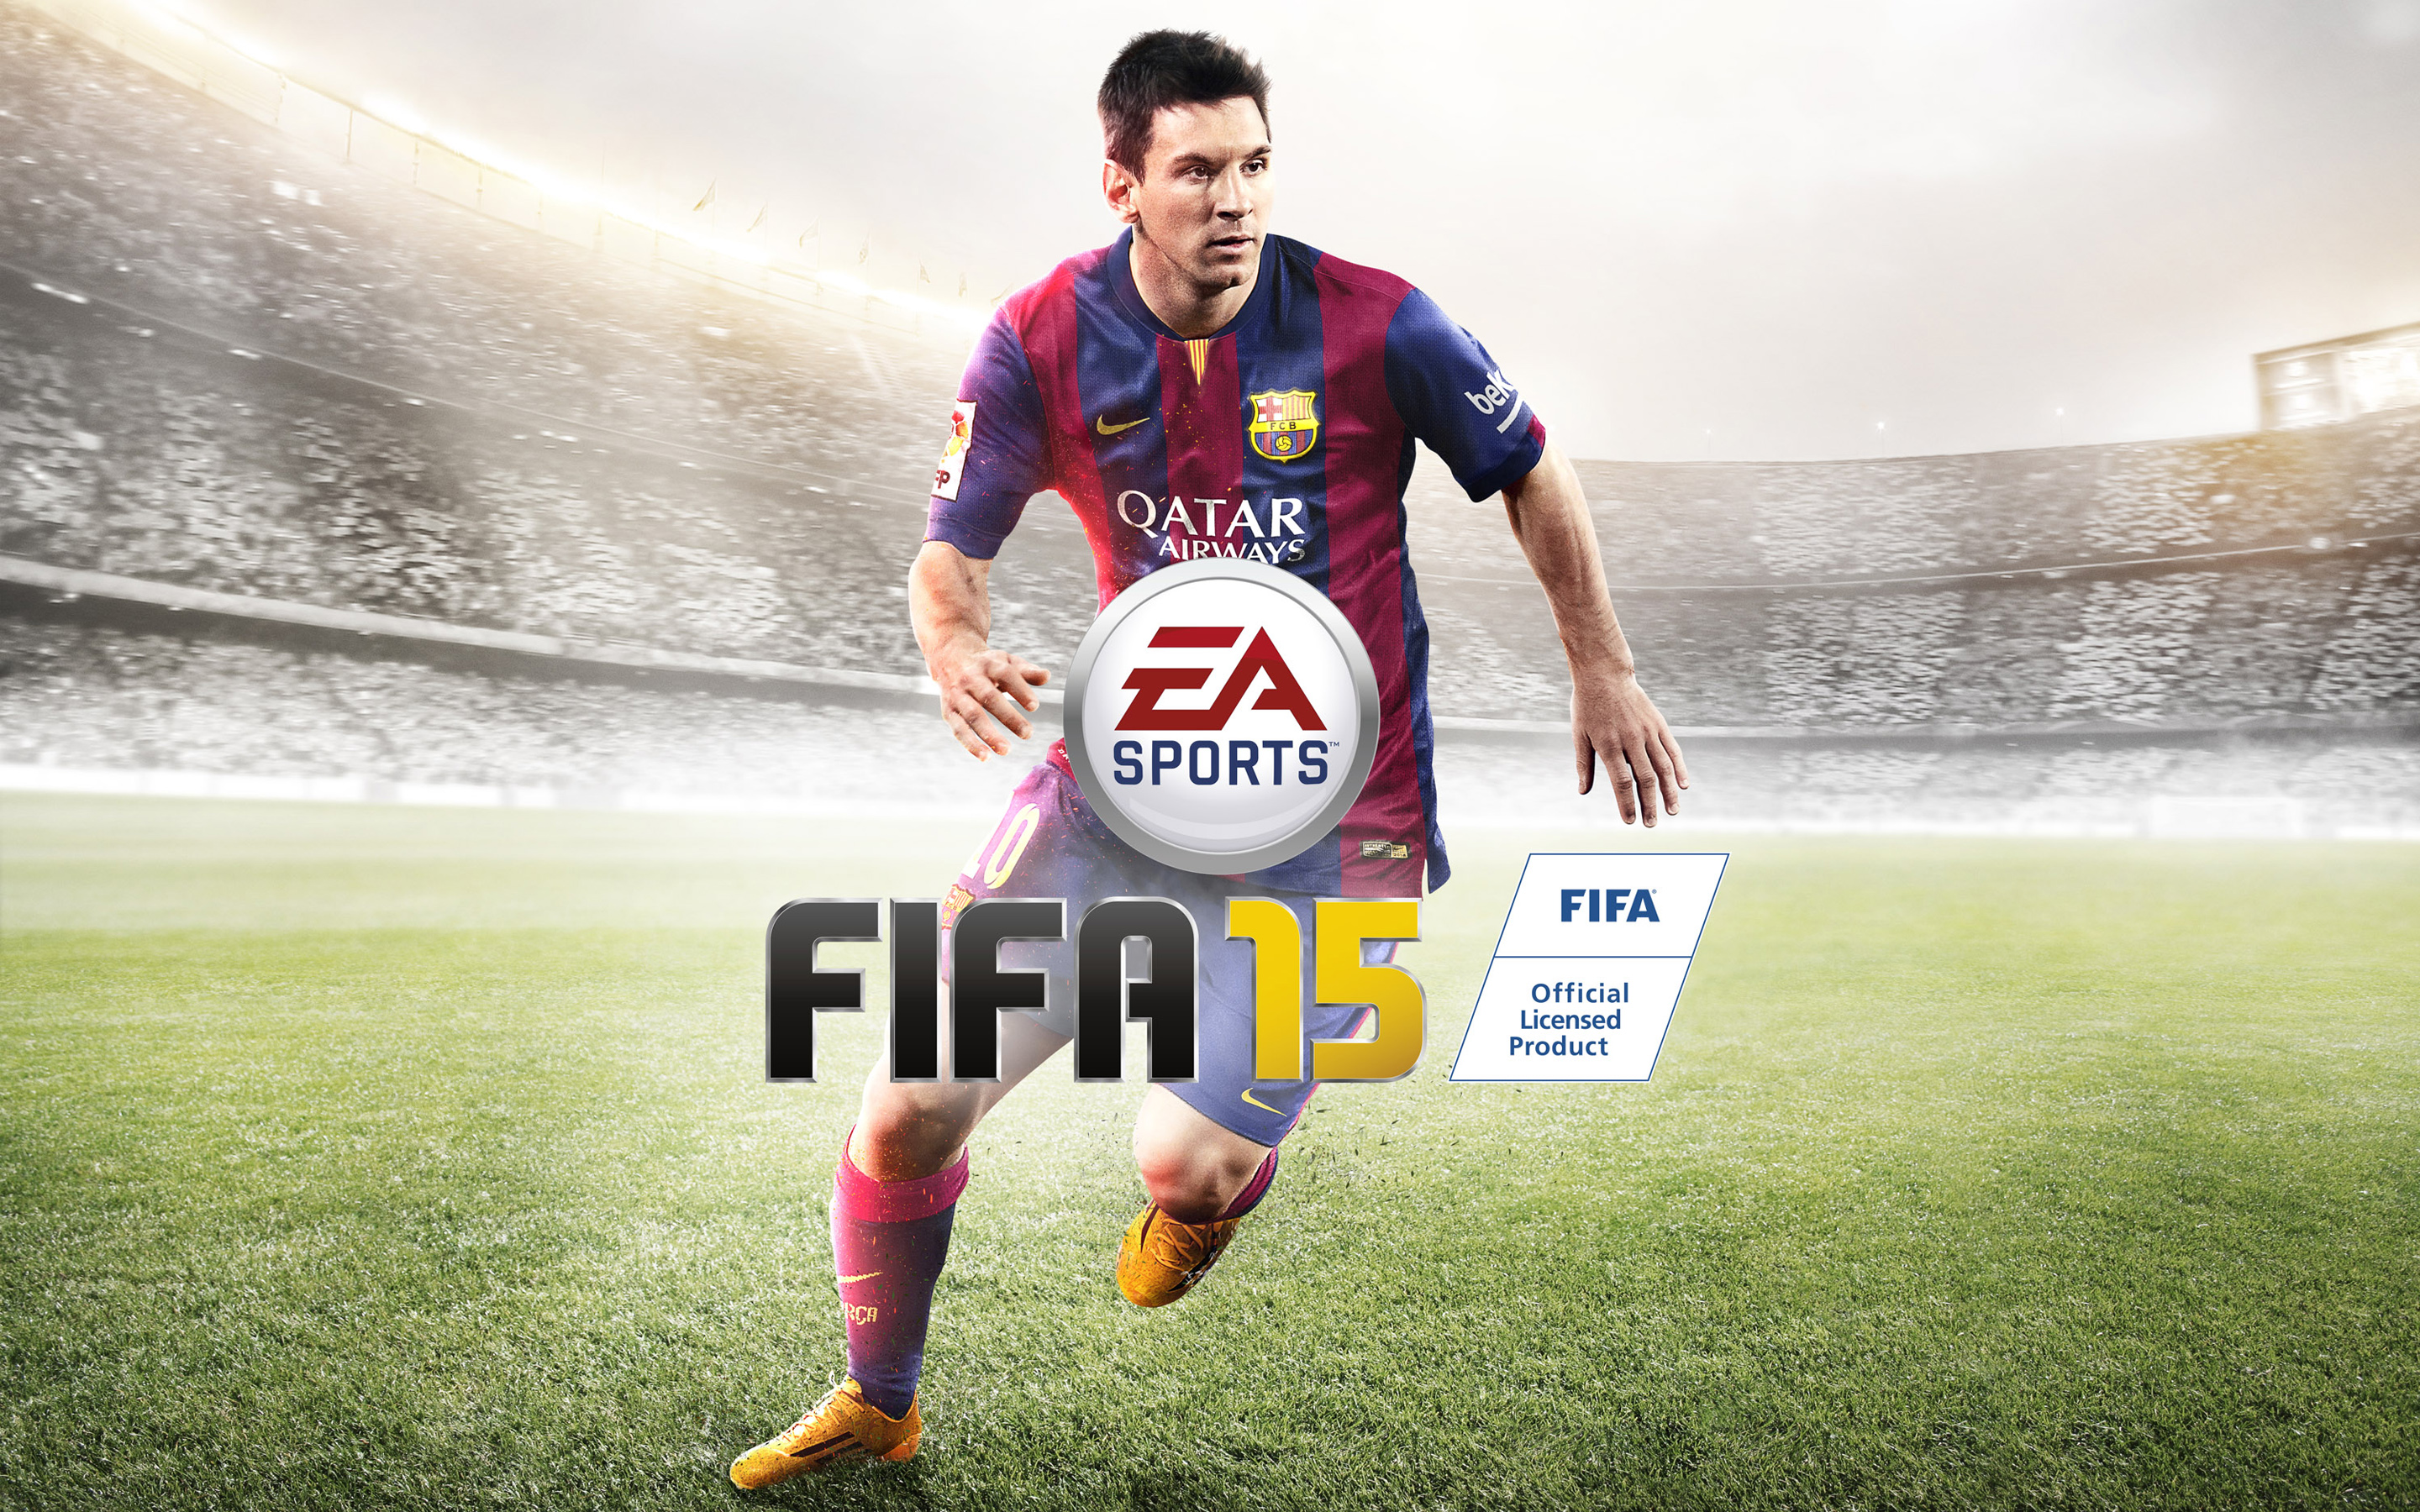 FIFA 15 Game